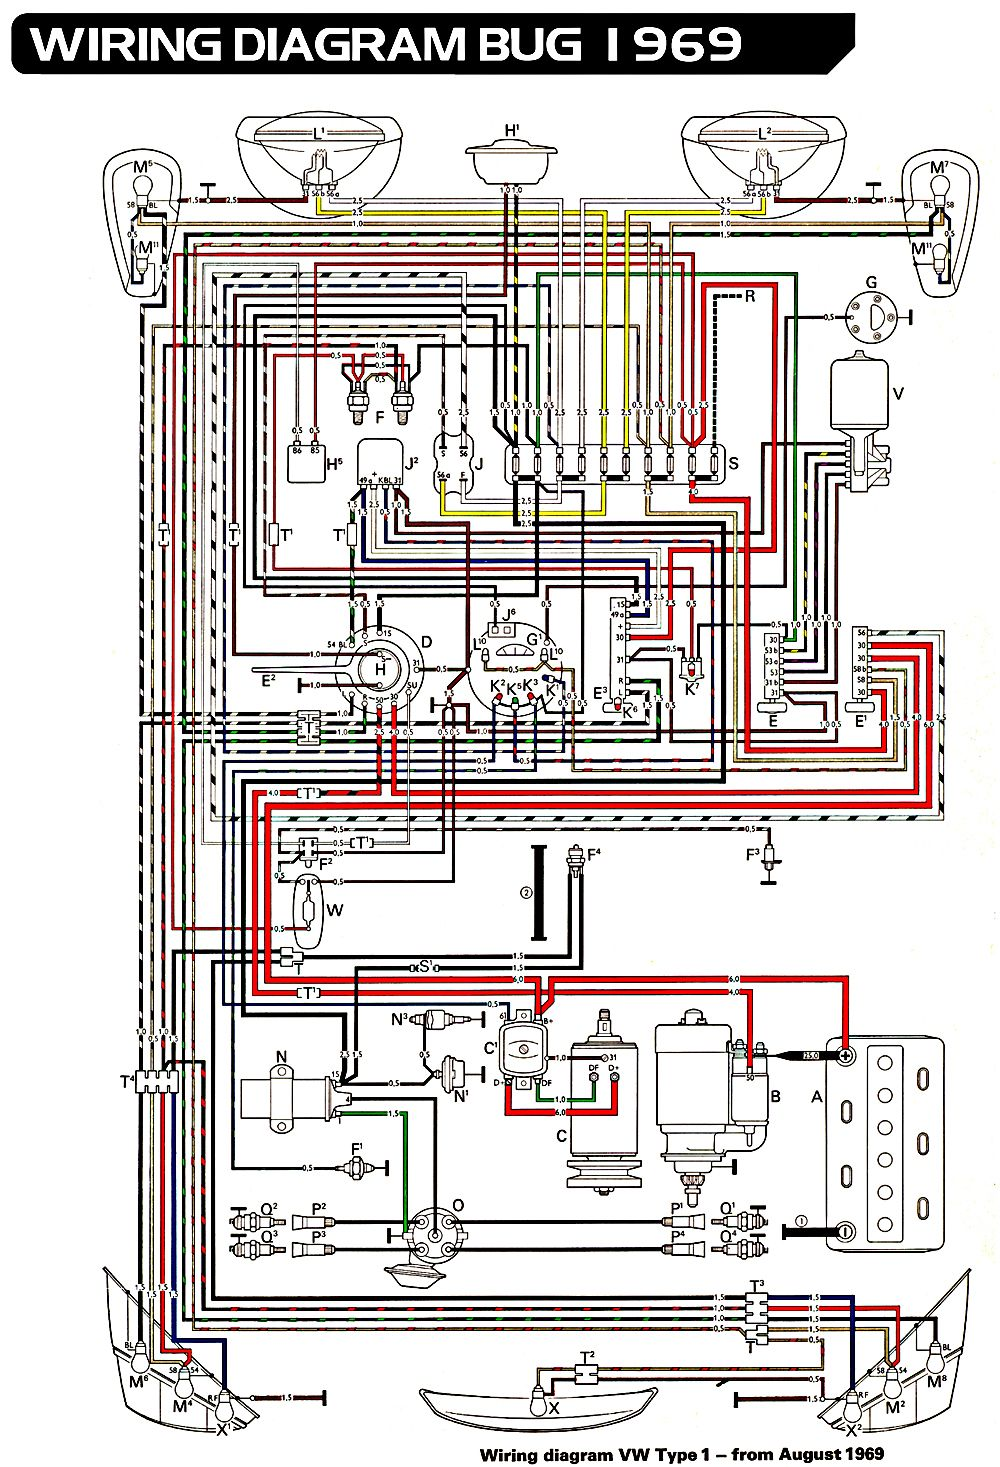 baja bug wiring harness wiring diagram data schema VW Beetle Generator Wiring Diagram 69 vw bug wiring harness diagrams schematics at 1967 beetle diagram vw baja bug wiring harness